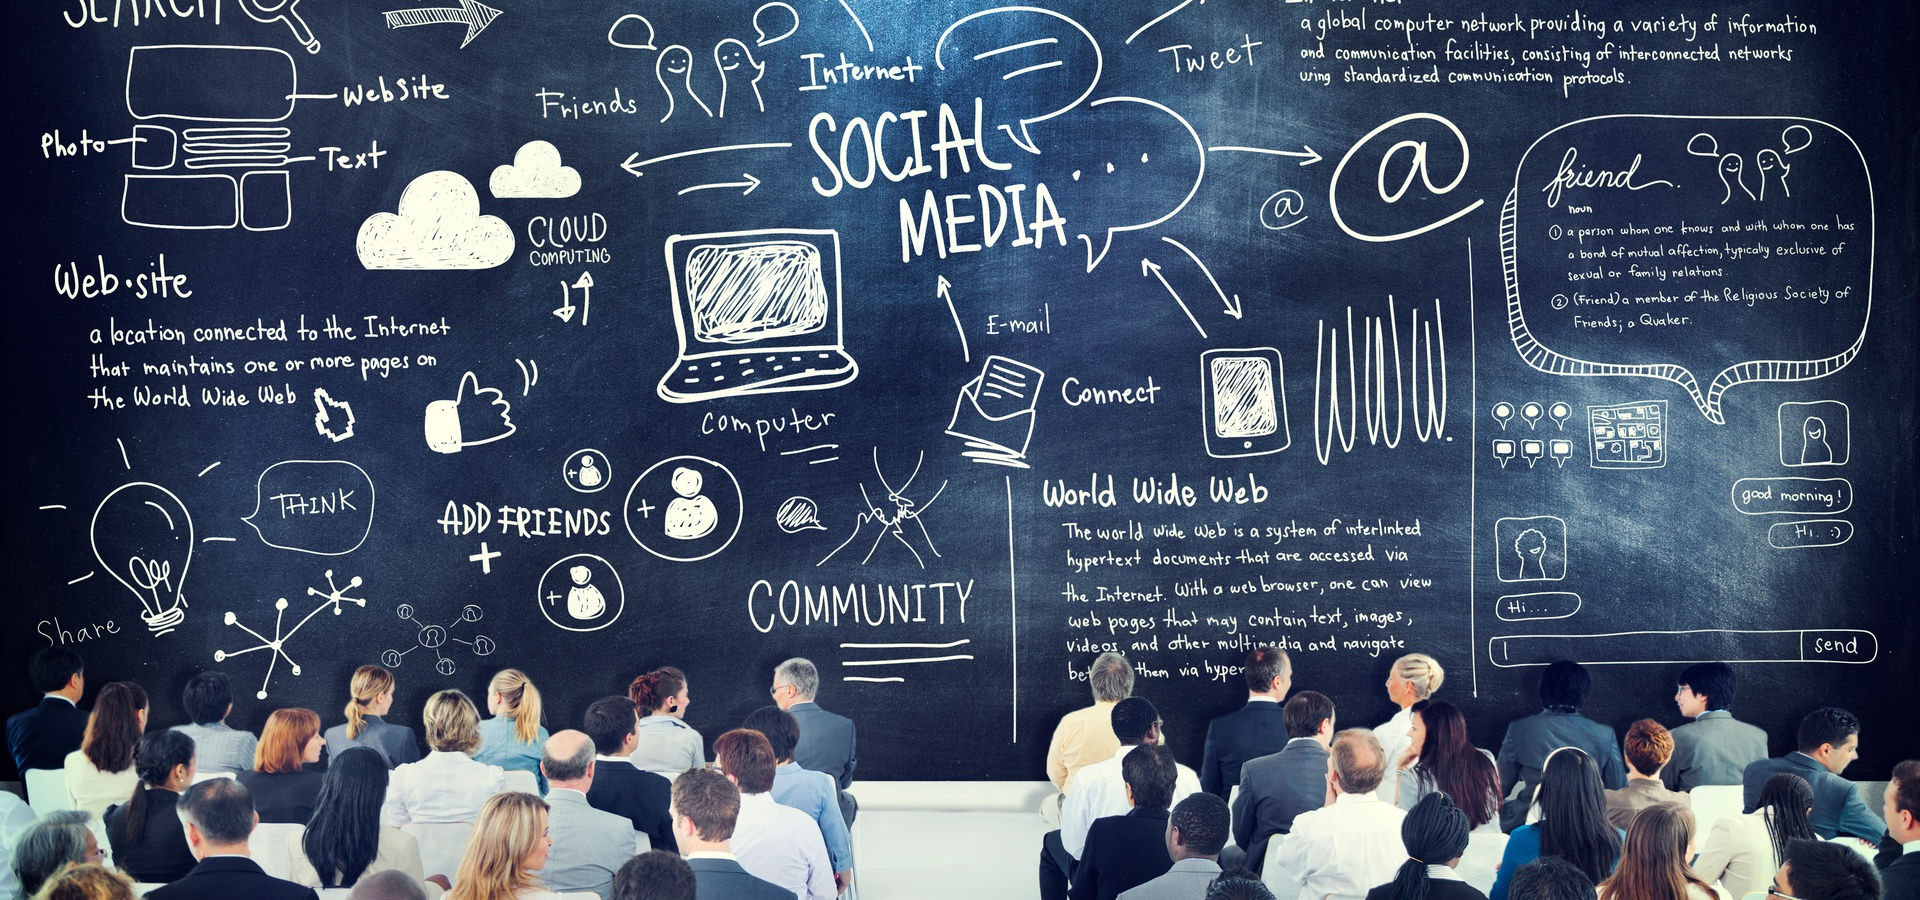 How Can Social Media Possibly Help Manufacturers?